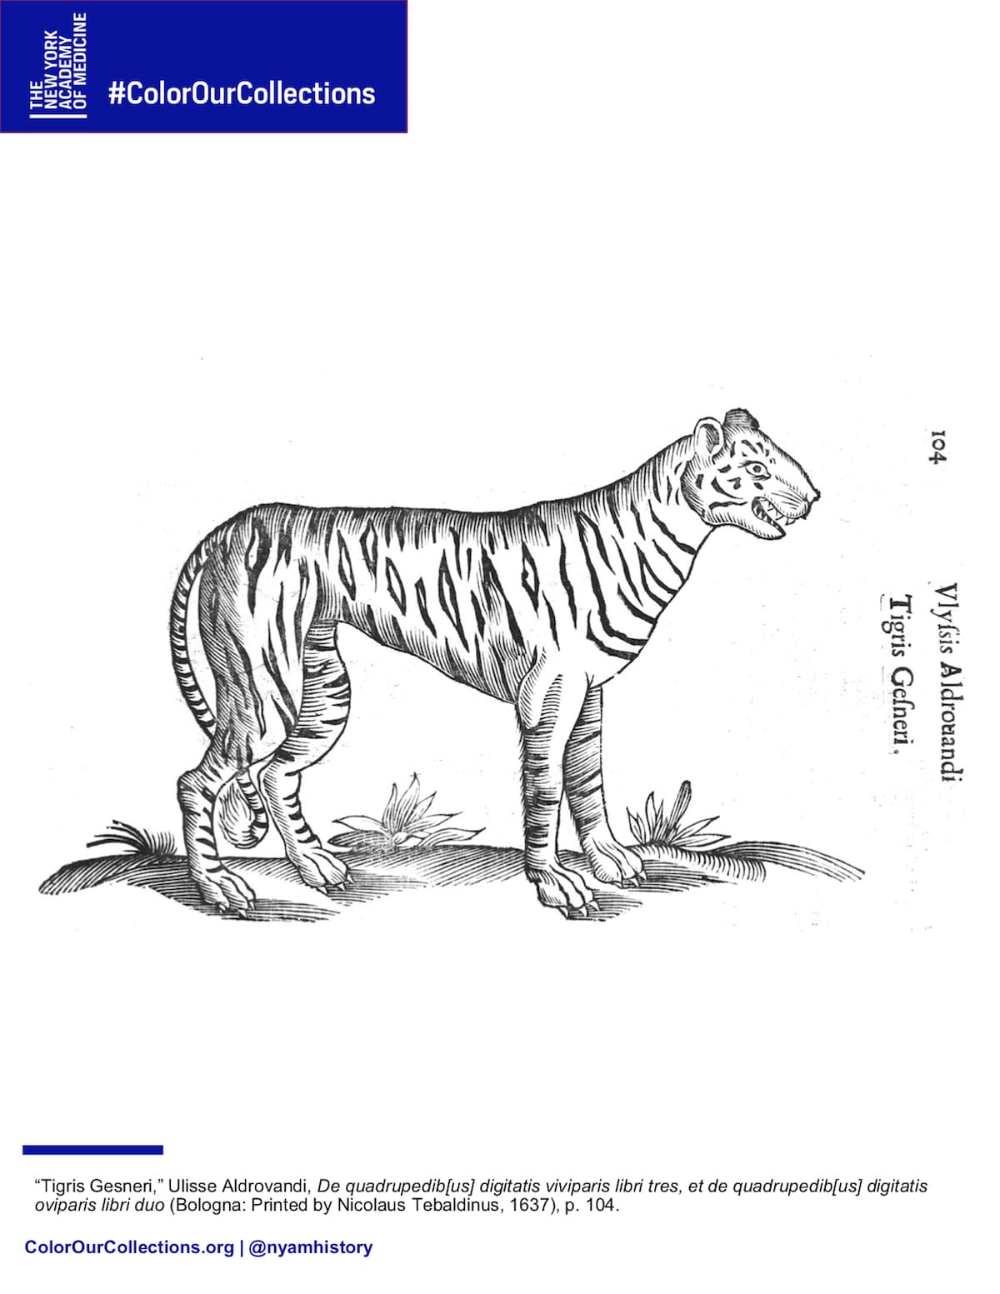 You Can Download Thousands Of Coloring Book Pages From Museum Collections From Around The World Coloring Books Coloring Book Pages Dinosaur Coloring Pages